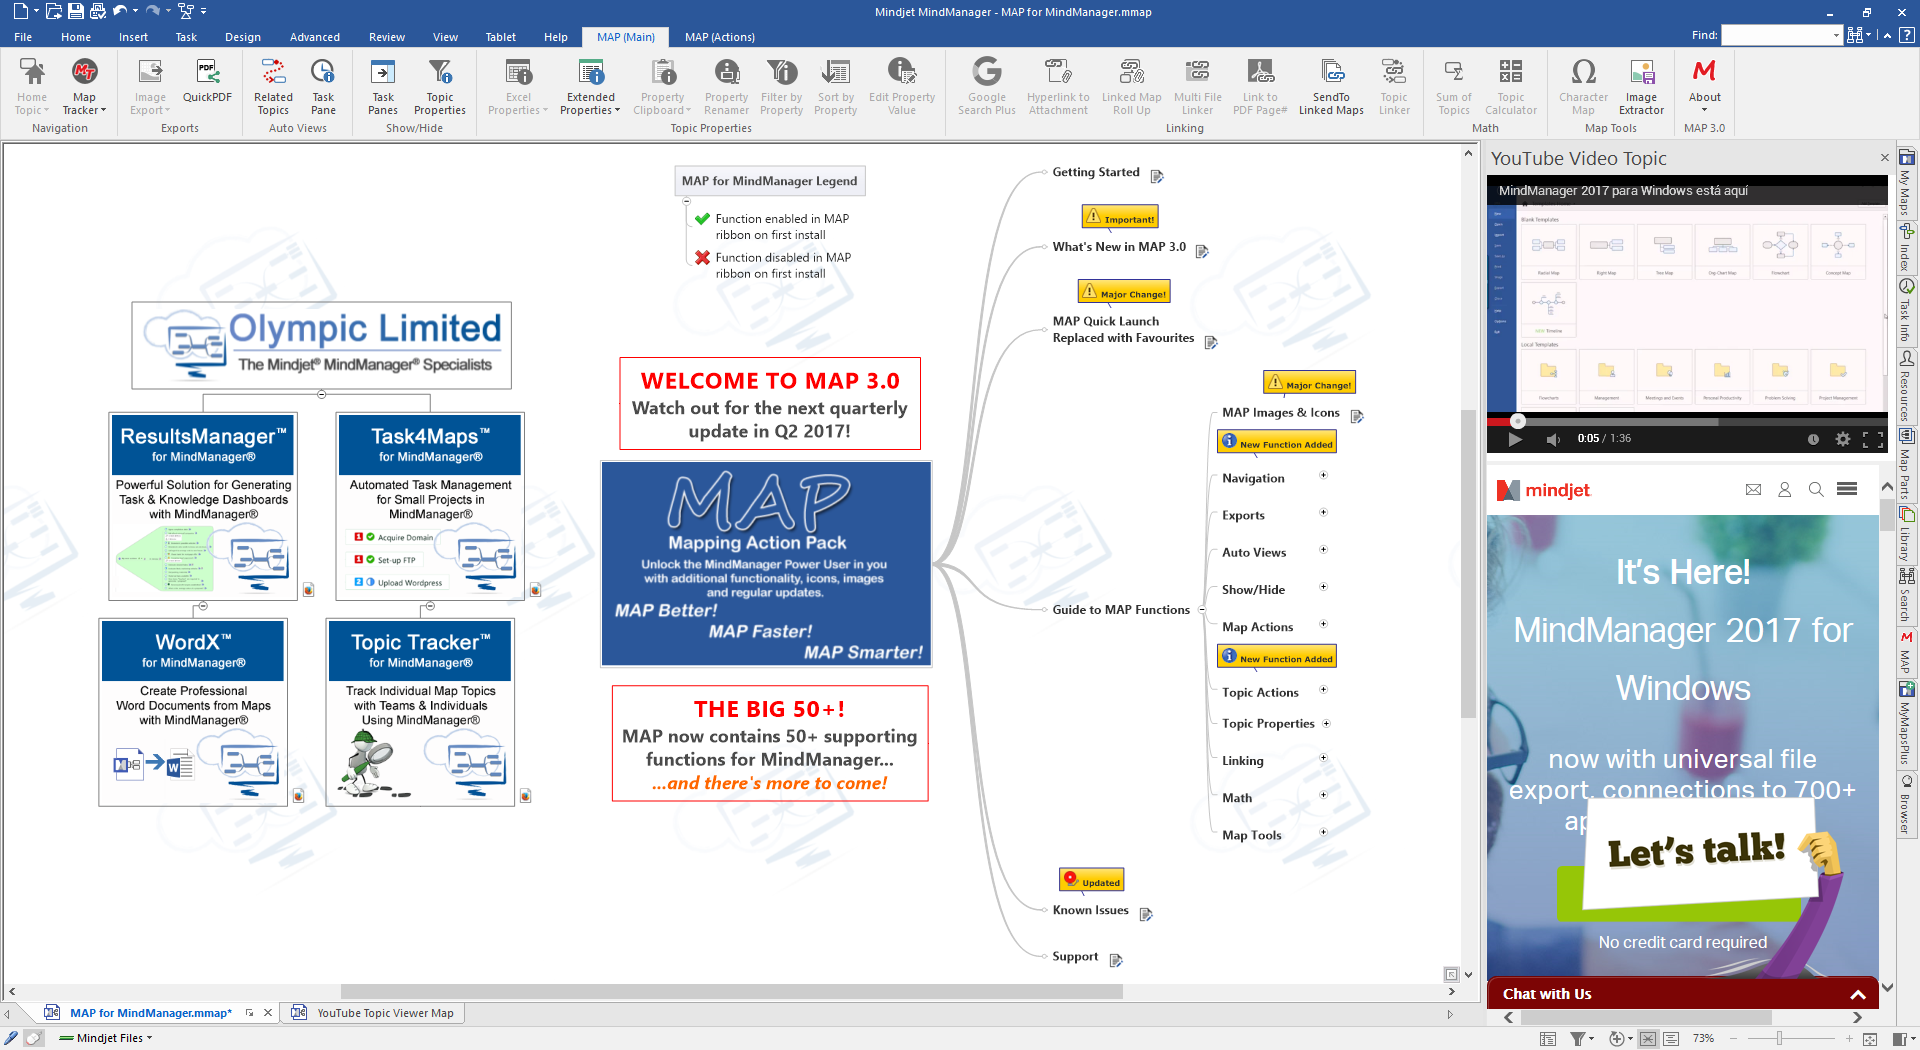 MAP 3.0 for MindManager